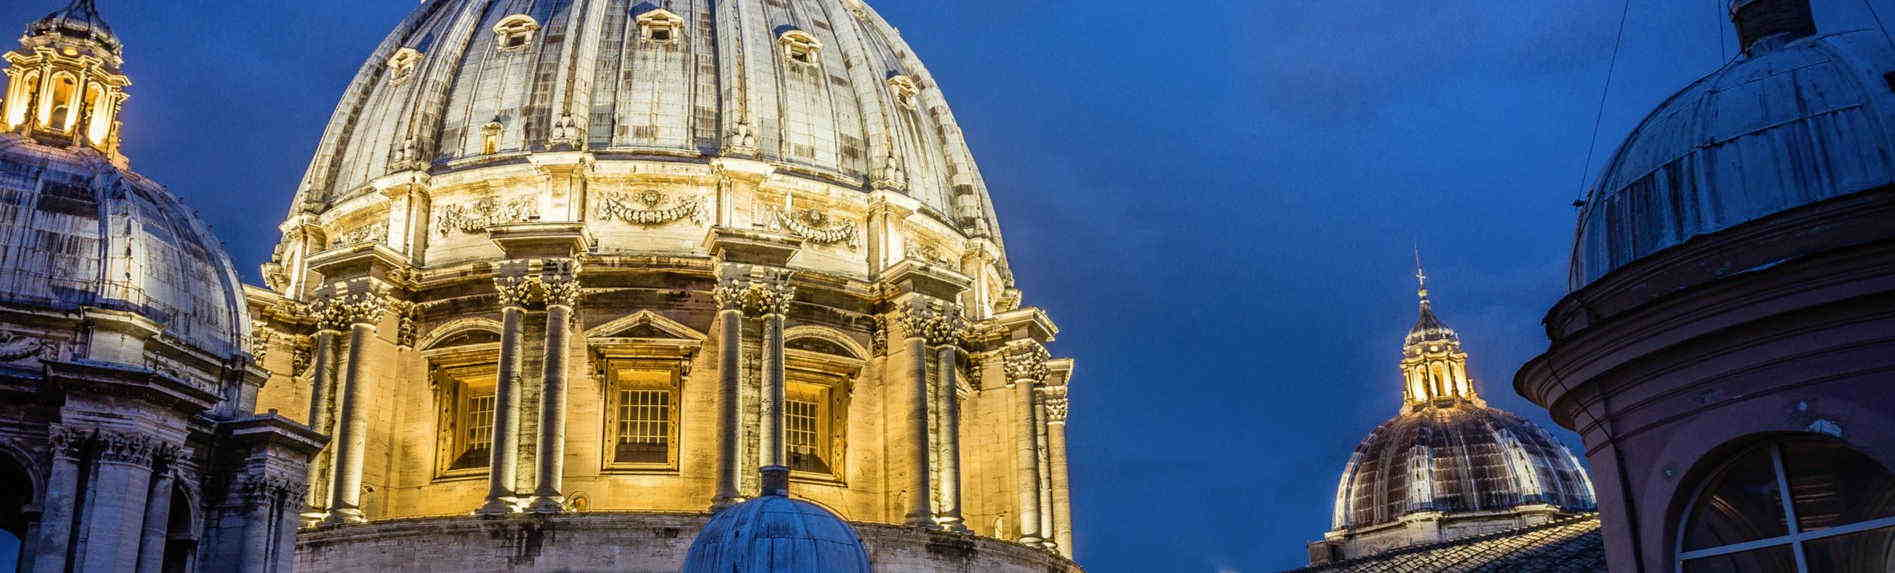 Climbing St Peters Dome